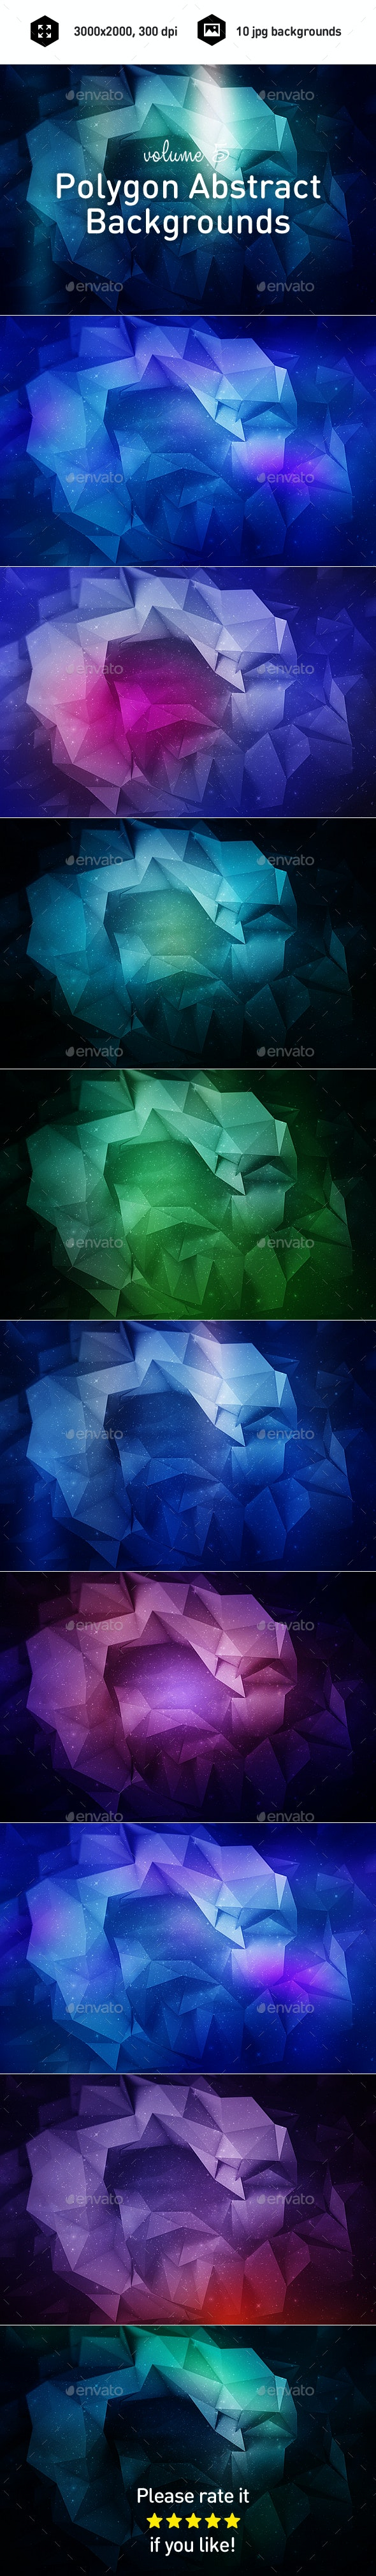 Polygon Abstract Backgrounds vol.5 - Abstract Backgrounds